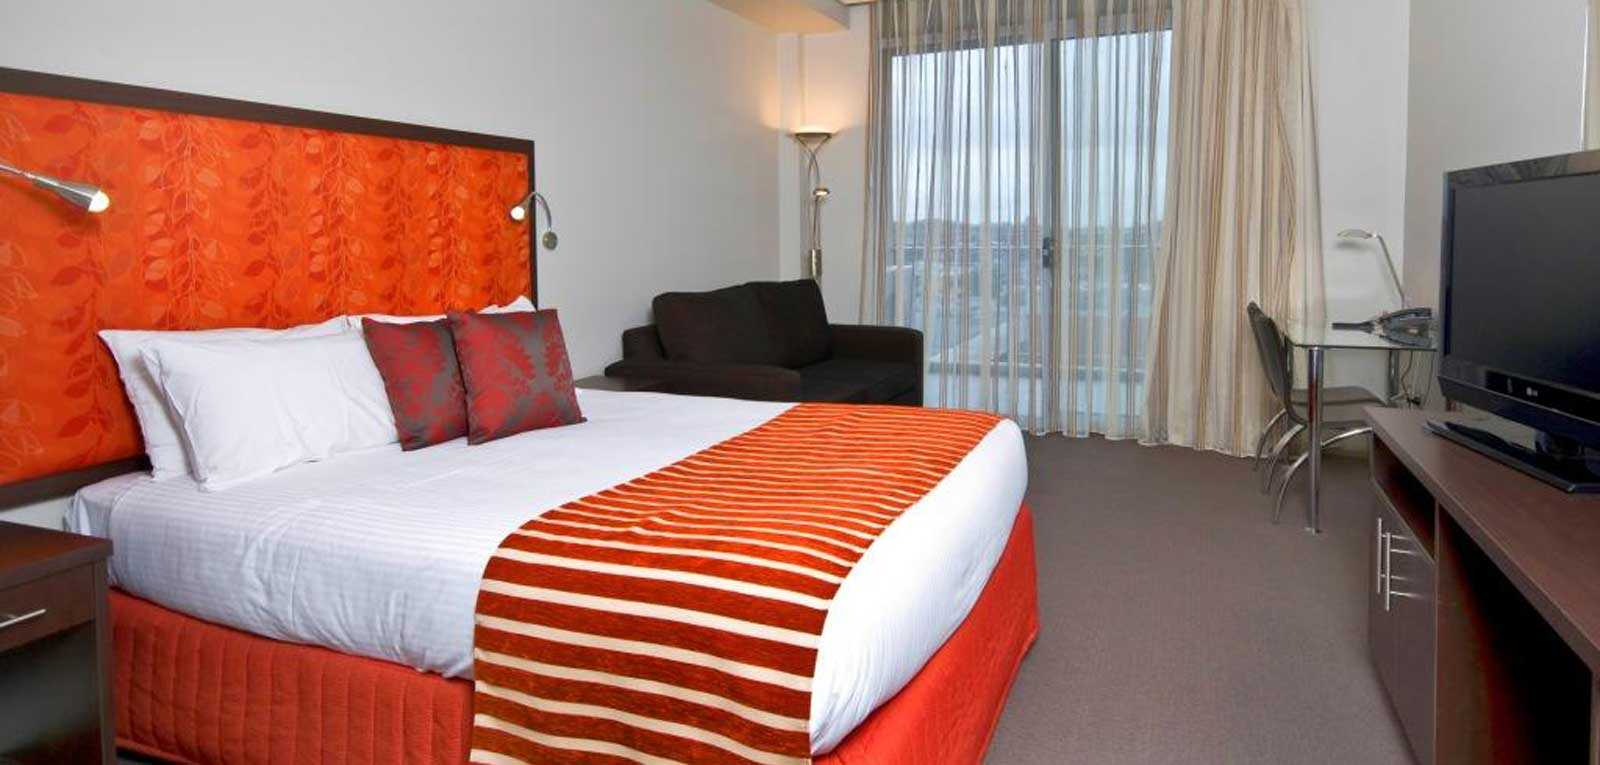 Mercure-Centro-Superior-Room.jpg#asset:2